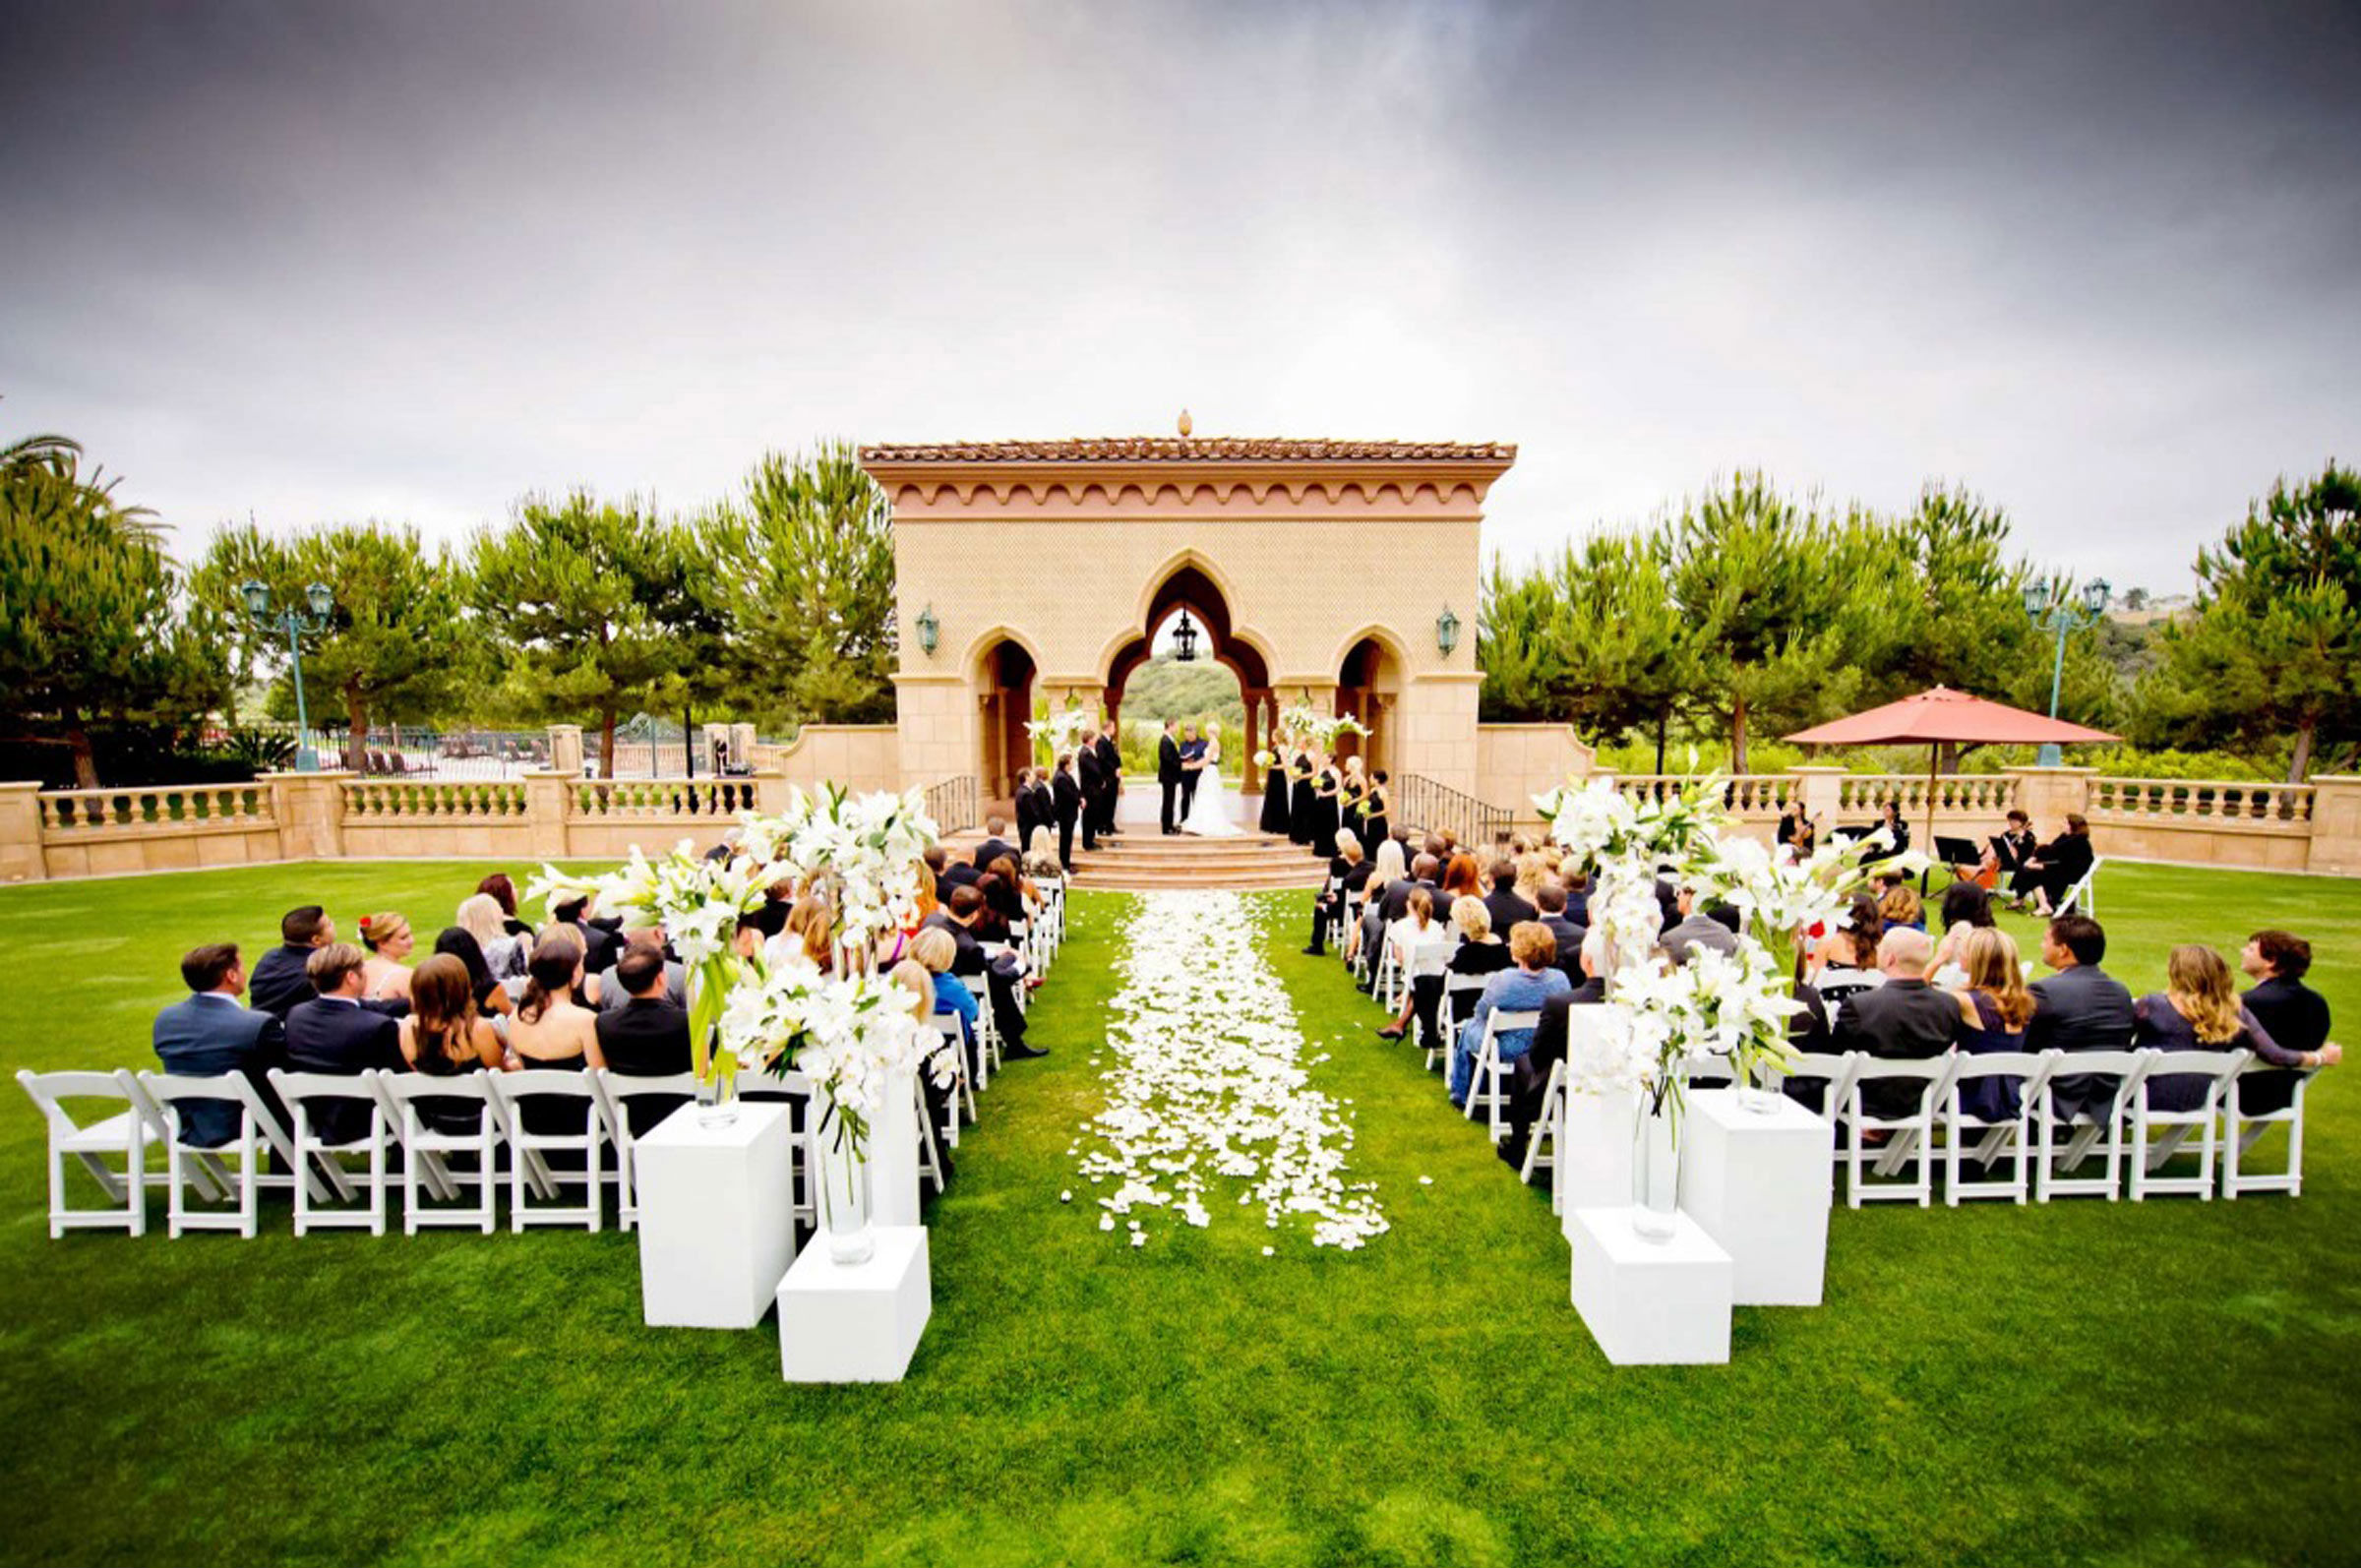 North County San Diego Wedding Venues 2018 Master List